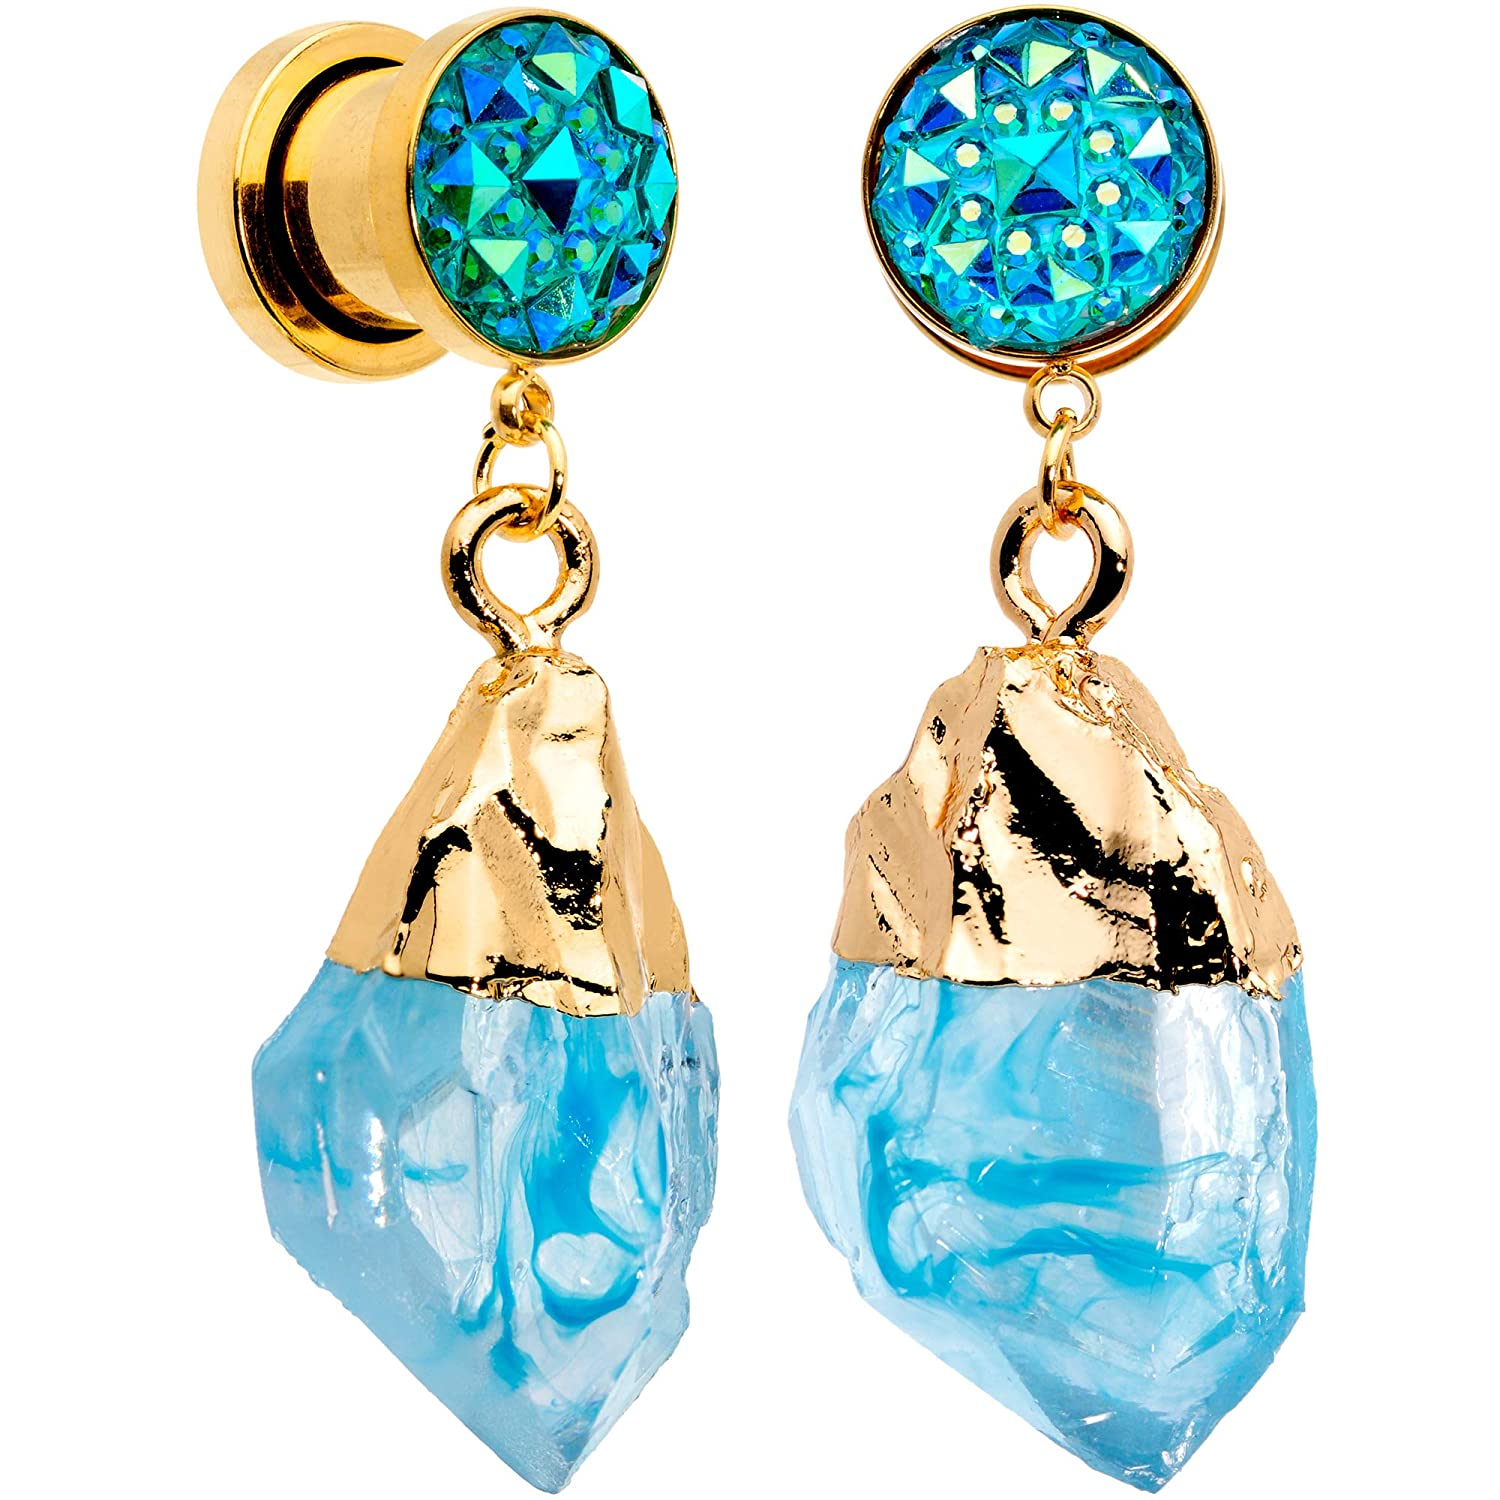 Body Candy 2Pc Gold Tone Plated Steel Screw Fit Plug Blue Accent Dangle Ear Plug Gauges Set of 2 10mm-16mm